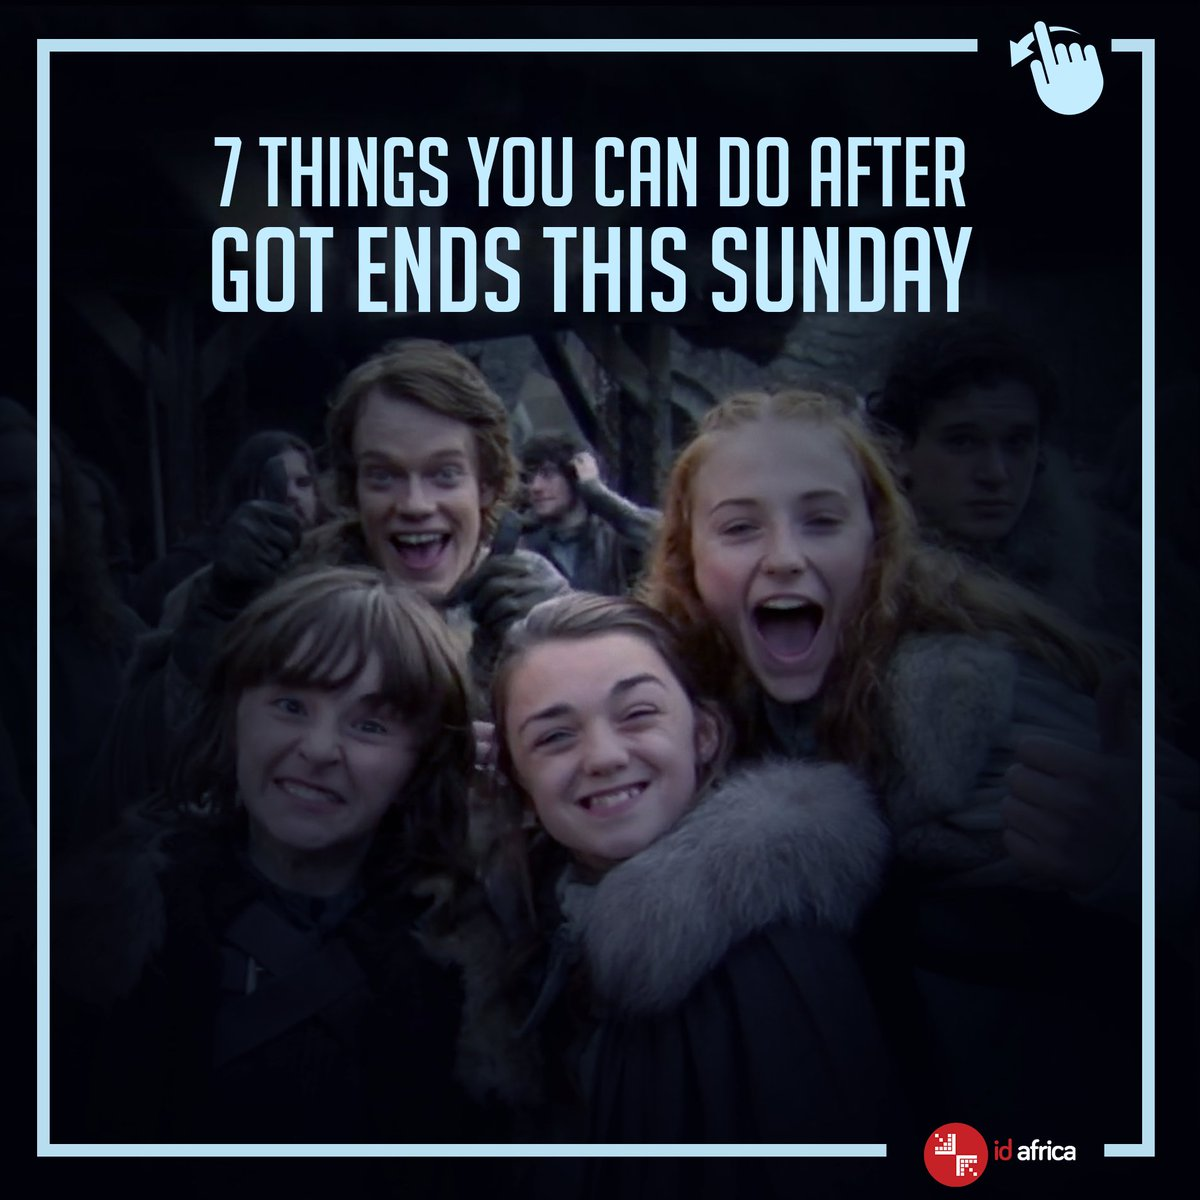 7 Things You Can Do After Game Of Thrones Ends On Sunday